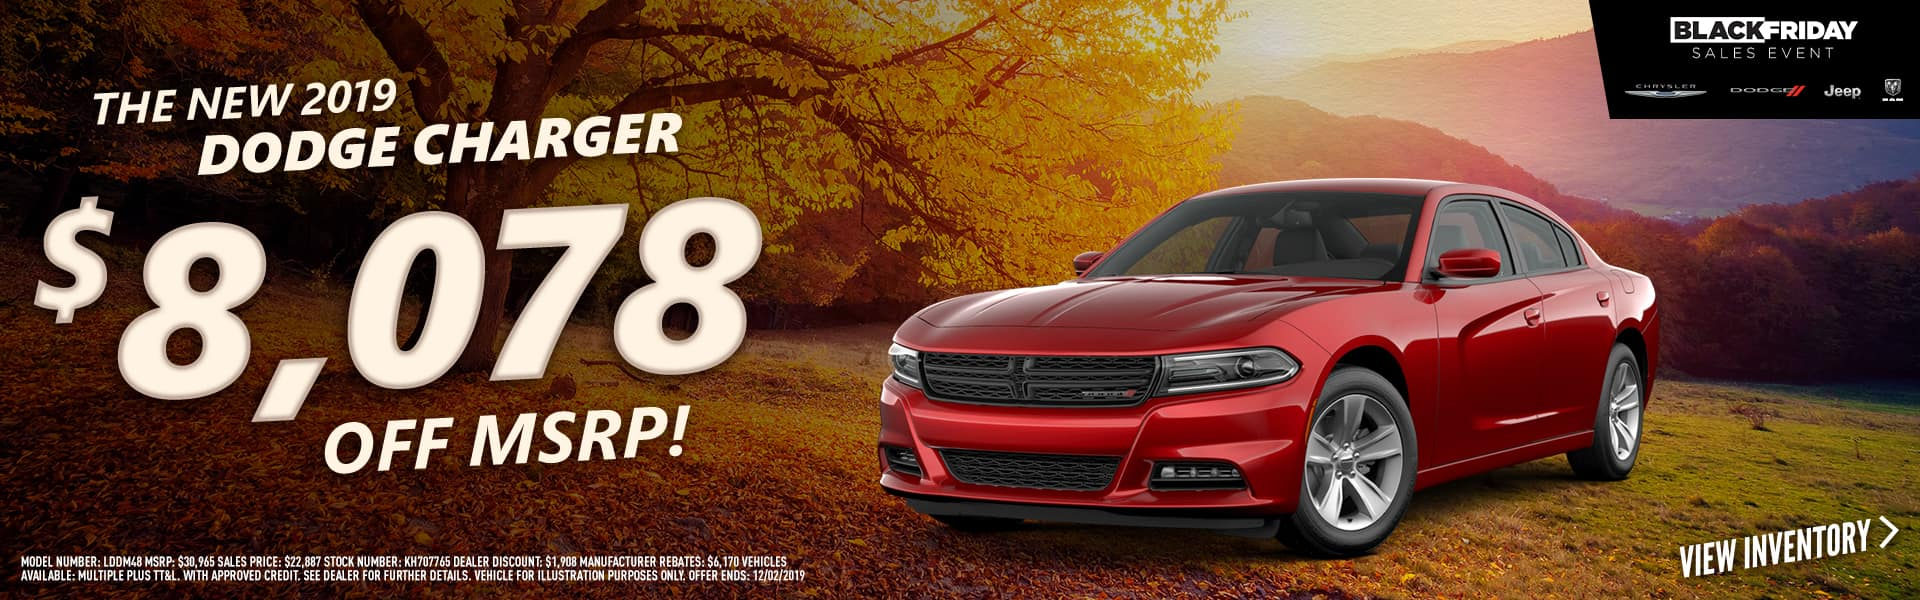 2019 Dodge Charger - $8,078 off MSRP